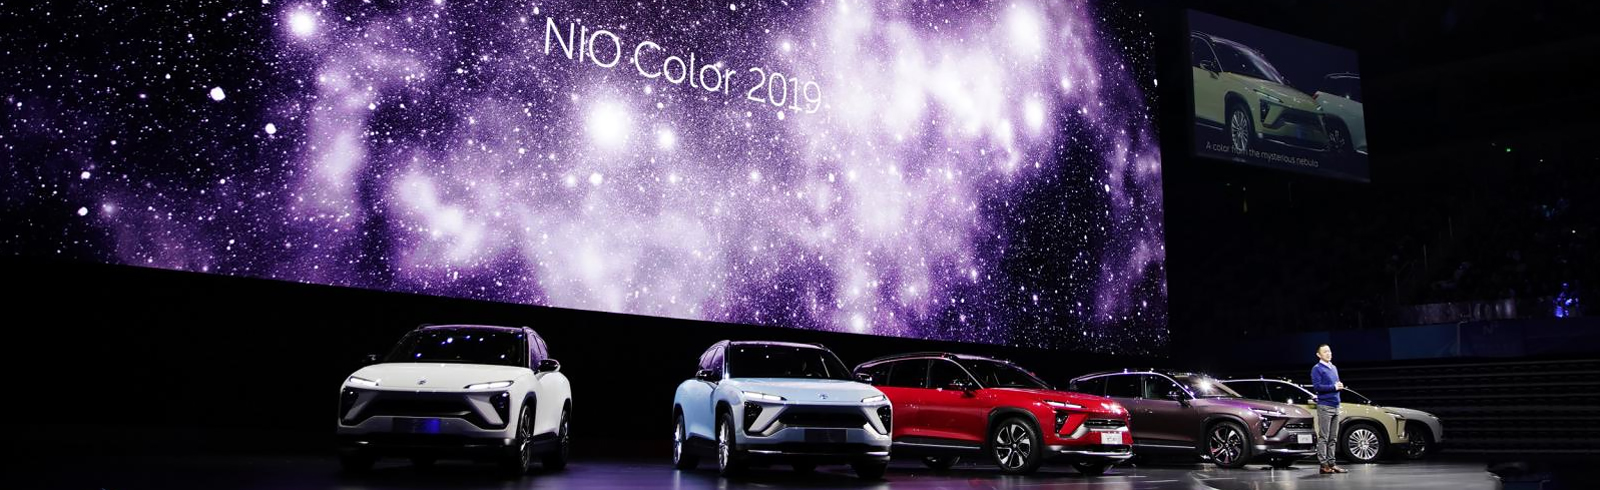 NIO introduces the ES6 all-electric SUV with dual electric motors